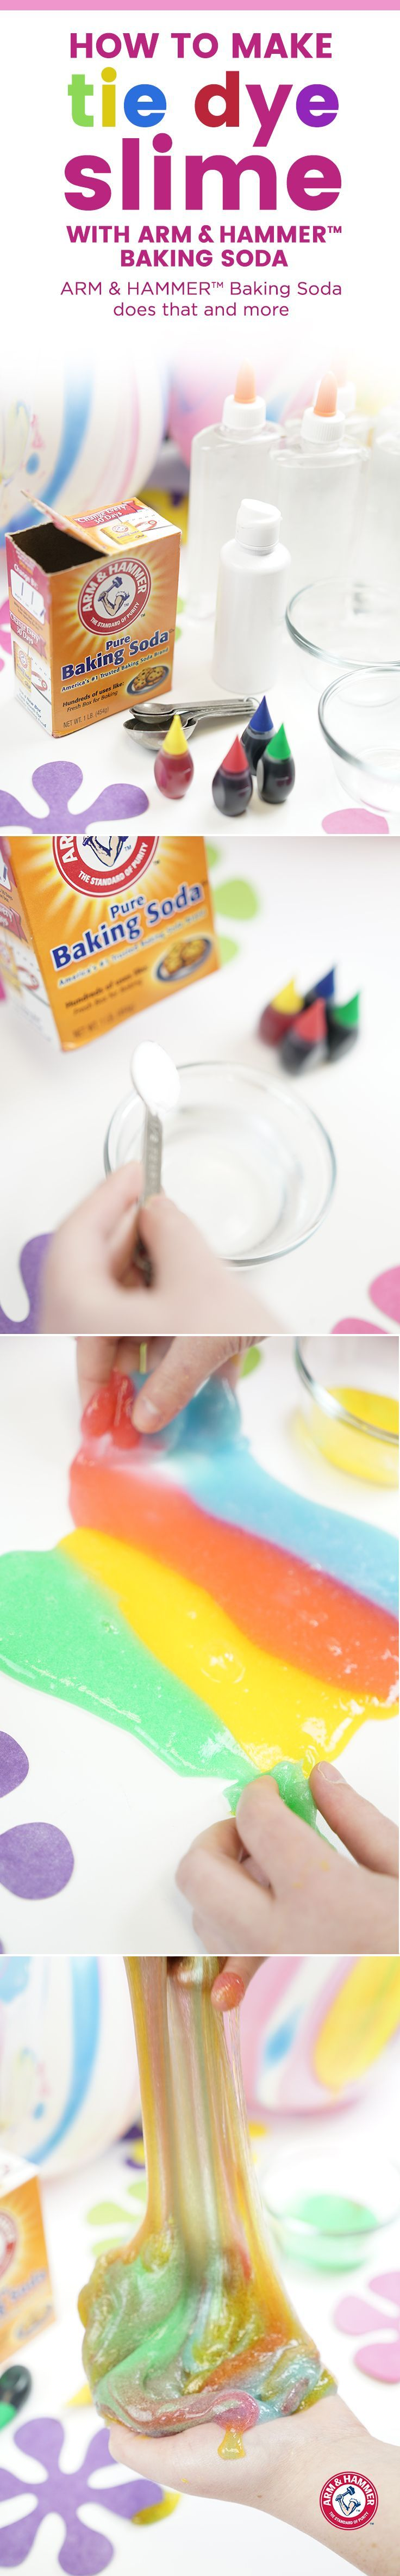 Start with 4 small bowls. Pour 4 oz. of clear school glue in each. In every bowl, add 1/2 tablespoon of baking soda; mix well.  Once dissolved, add 3-5 drops of food coloring in each bowl, then stir. When that's fully mixed, gradually add 10-15 drops of saline solution, a few droplets at a time. When the slime reaches a gooey state remove & knead with your hands.  When all batches are ready lay on a flat surface & twist to create tie dye pattern.